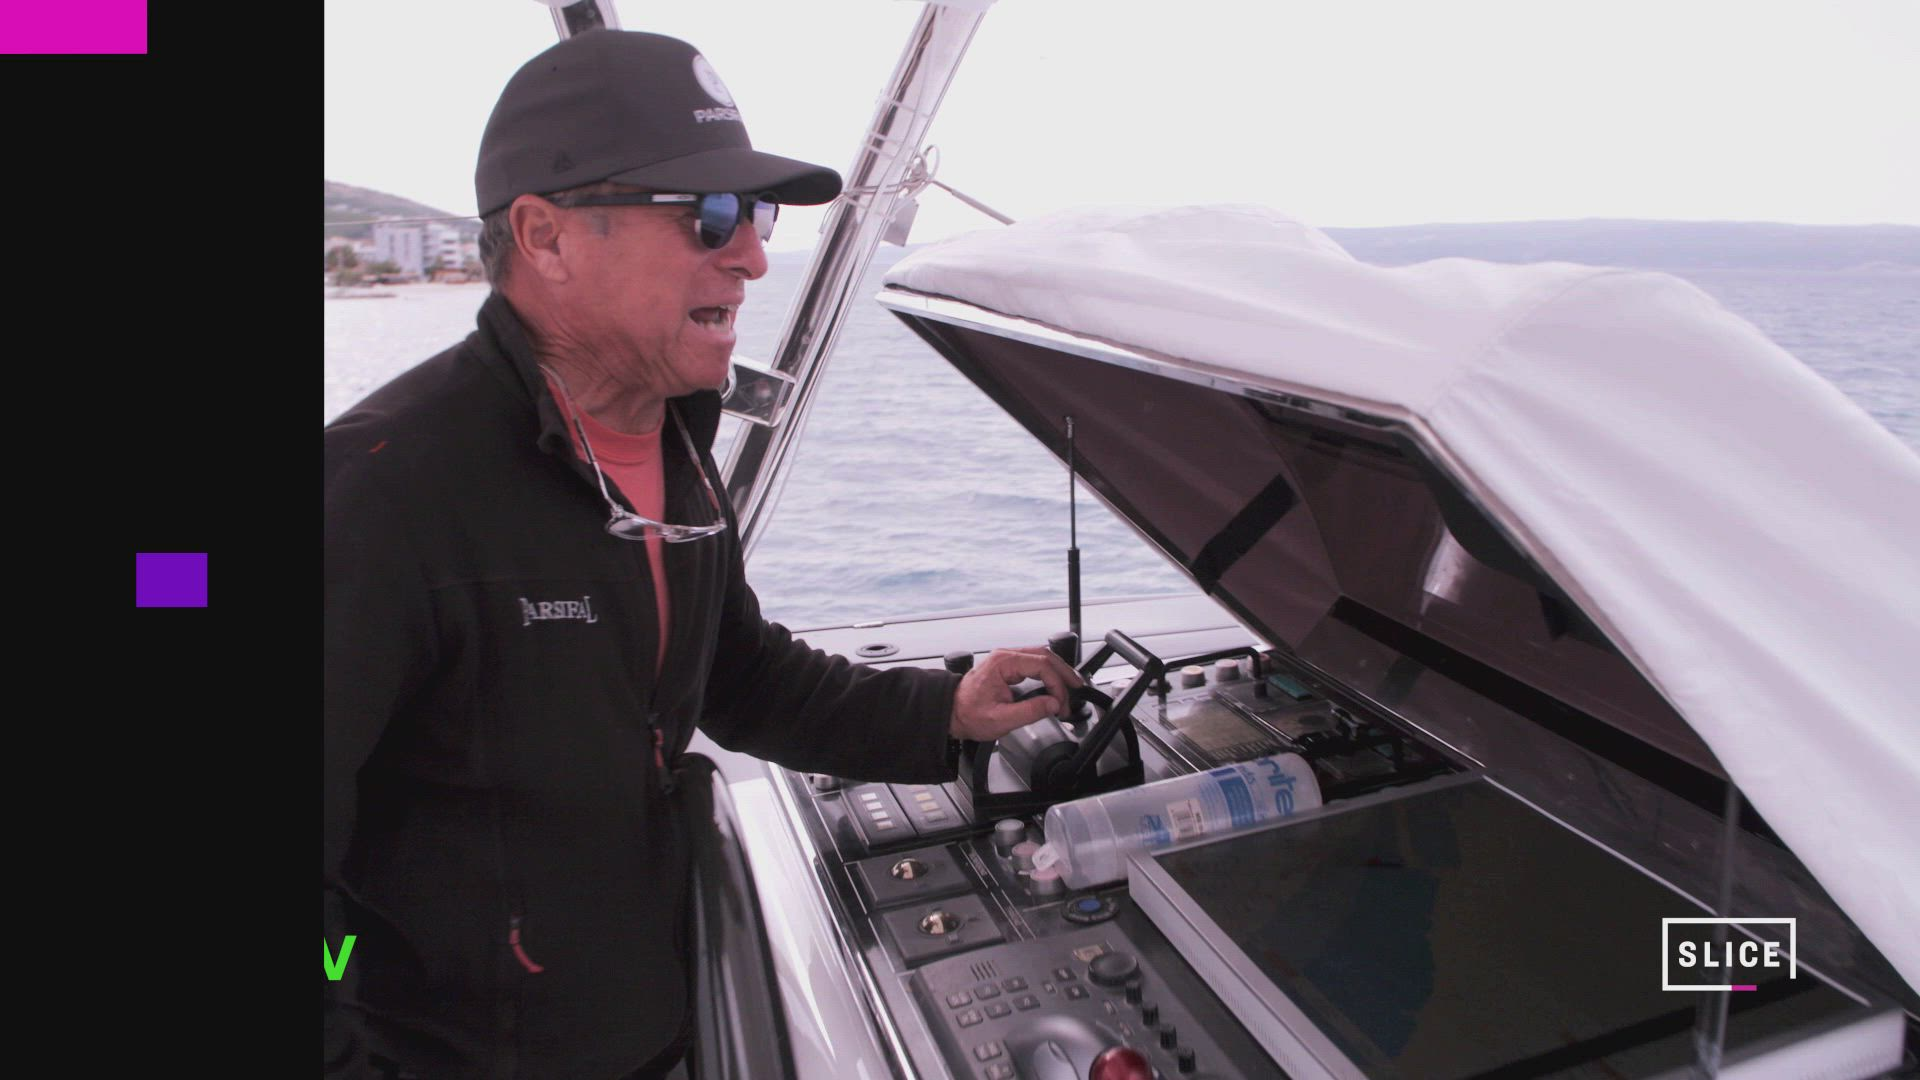 Below Deck Sailing Yacht Season 2 Preview. Go to a video page.